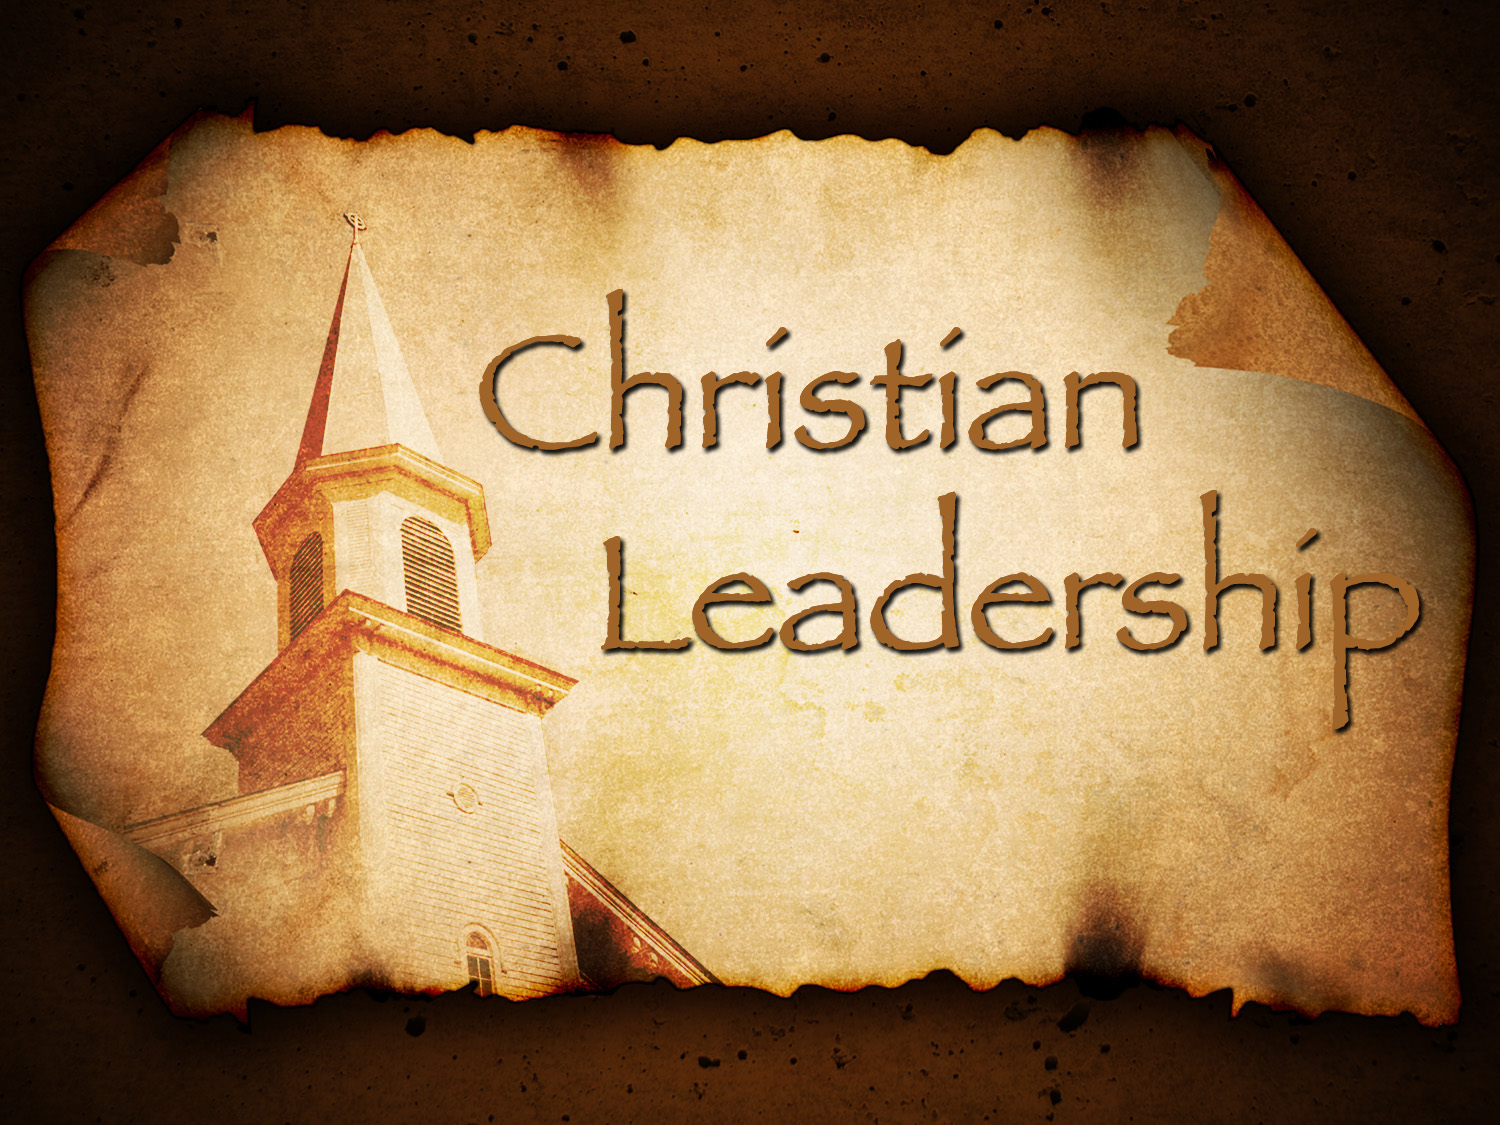 christain leadership A final word on christian leaders comes from the article wanted: a few good shepherds (must know how to wash feet) by john macarthur: under the plan god has ordained for the church, leadership is a position of humble, loving service.